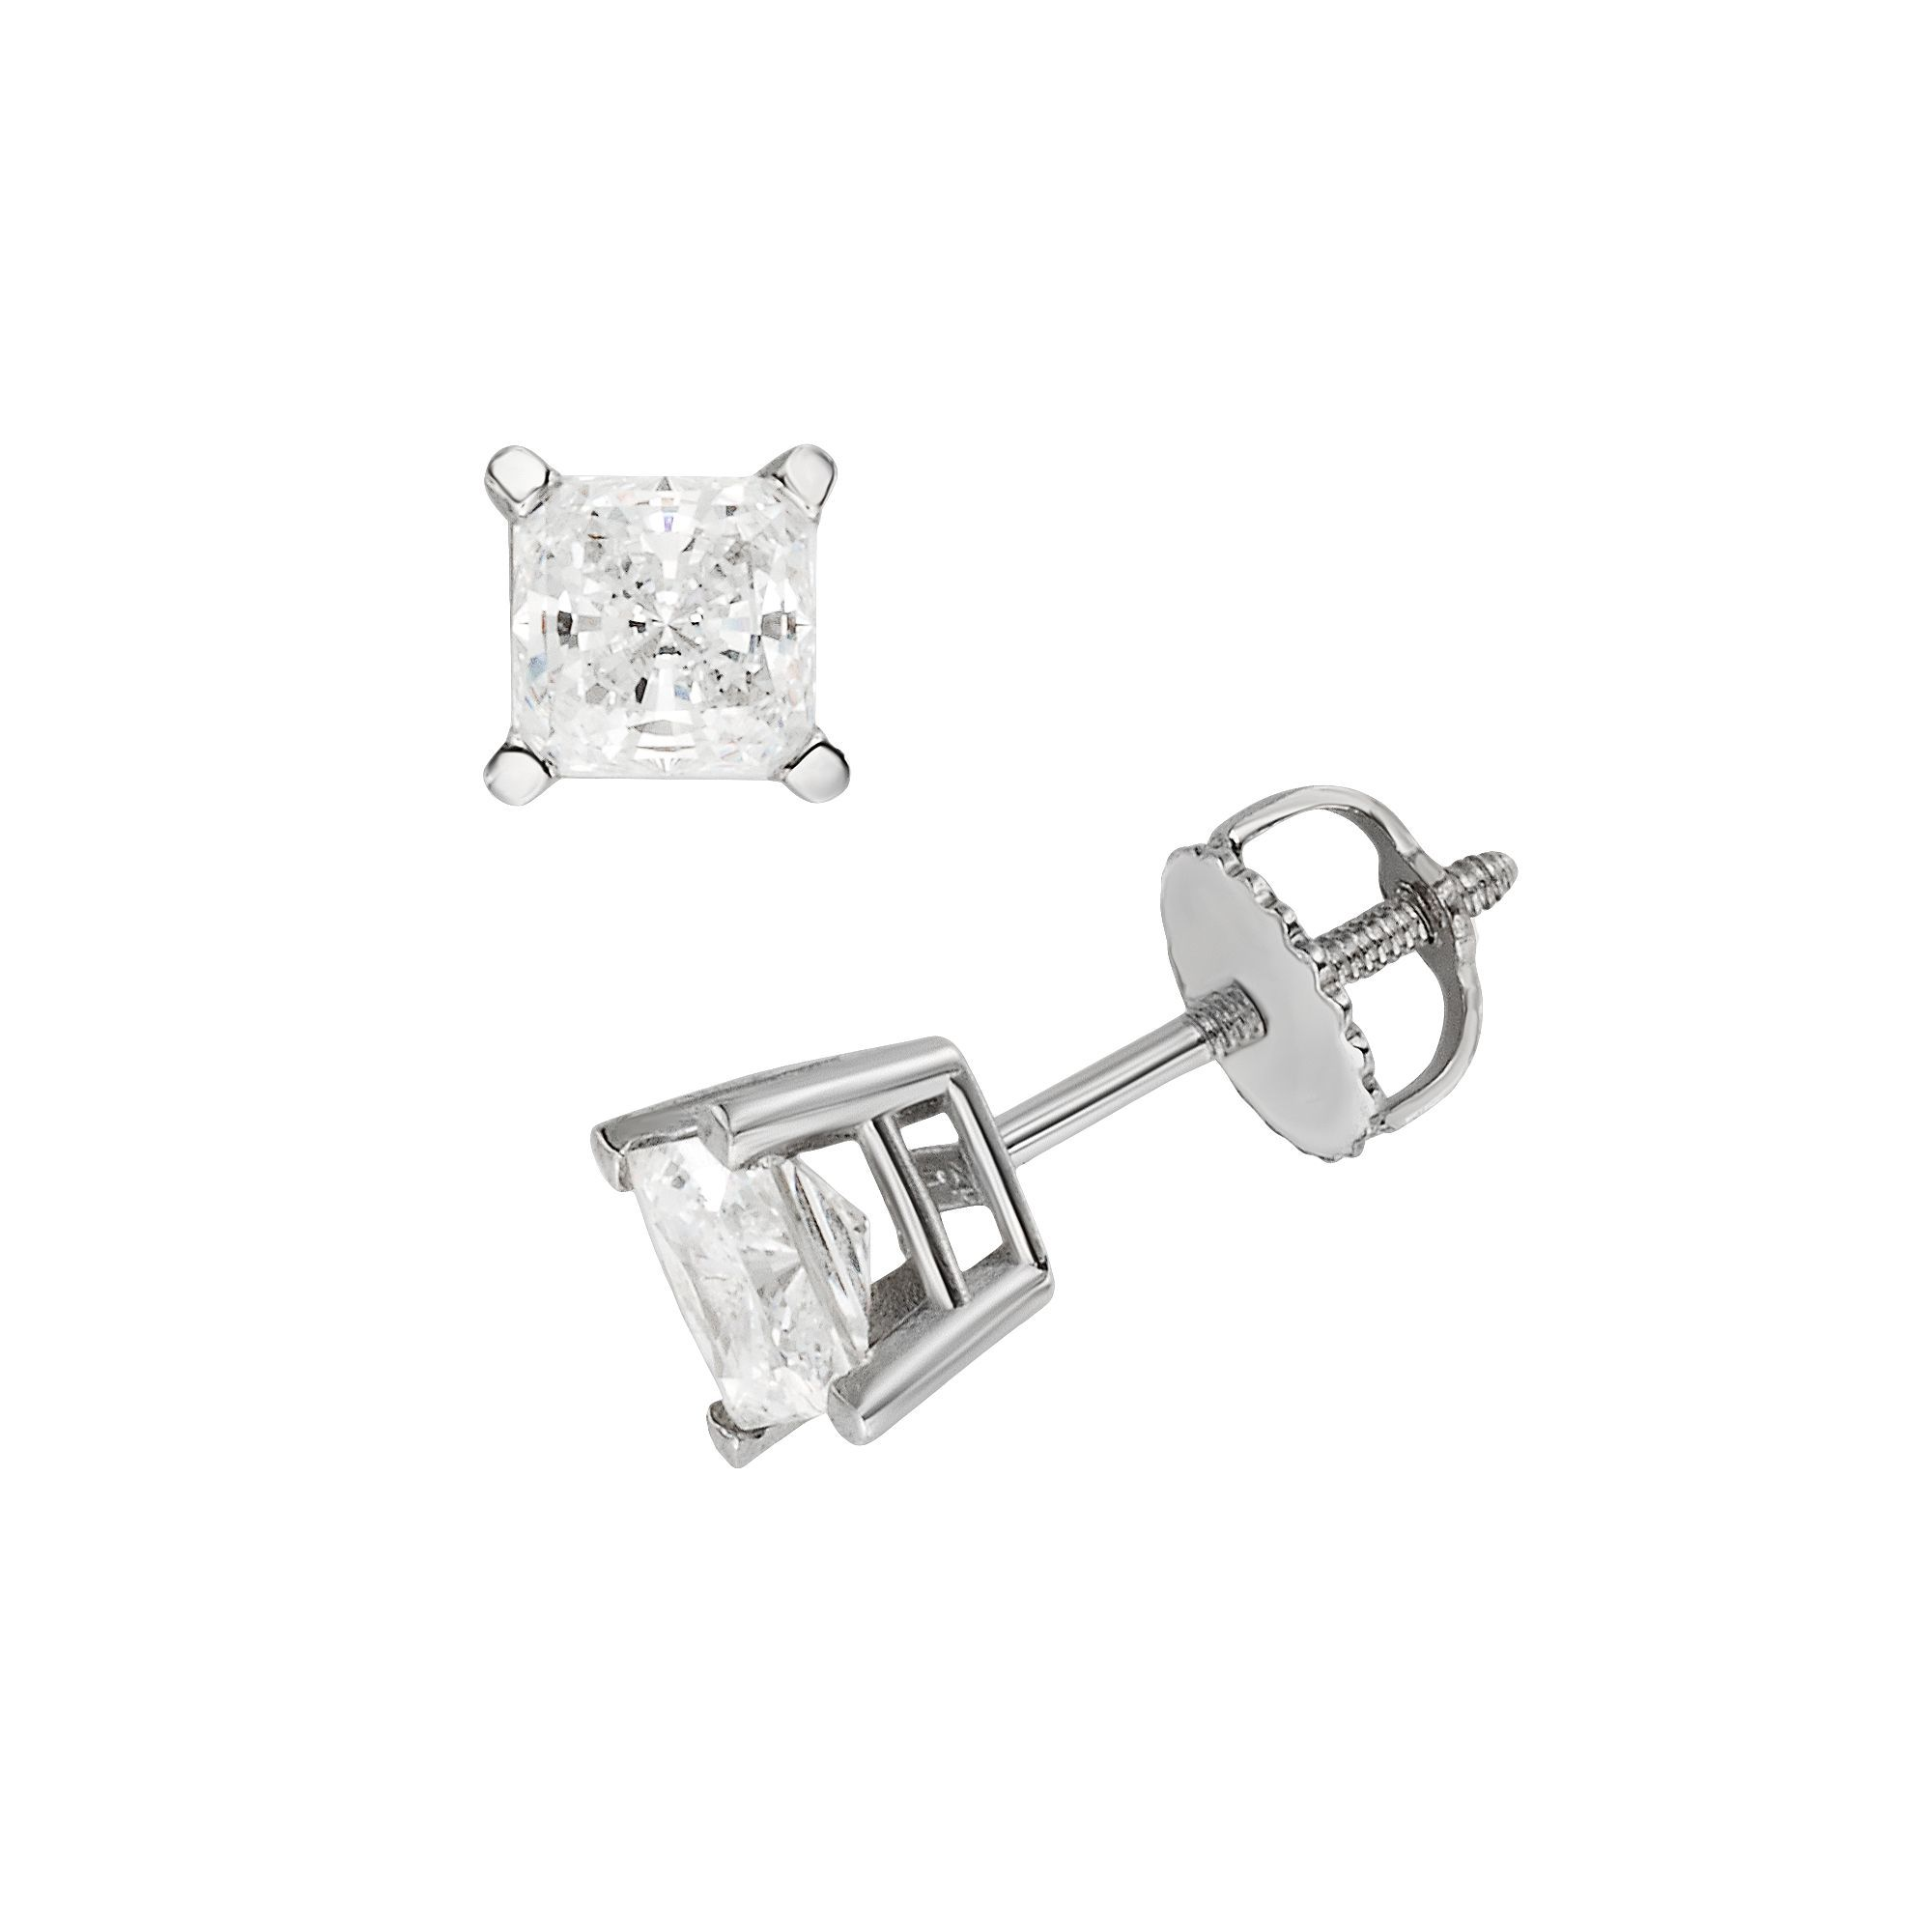 brilliant aurora claw earrings studs diamond brilliantcut stud solitaire cut sixclaw